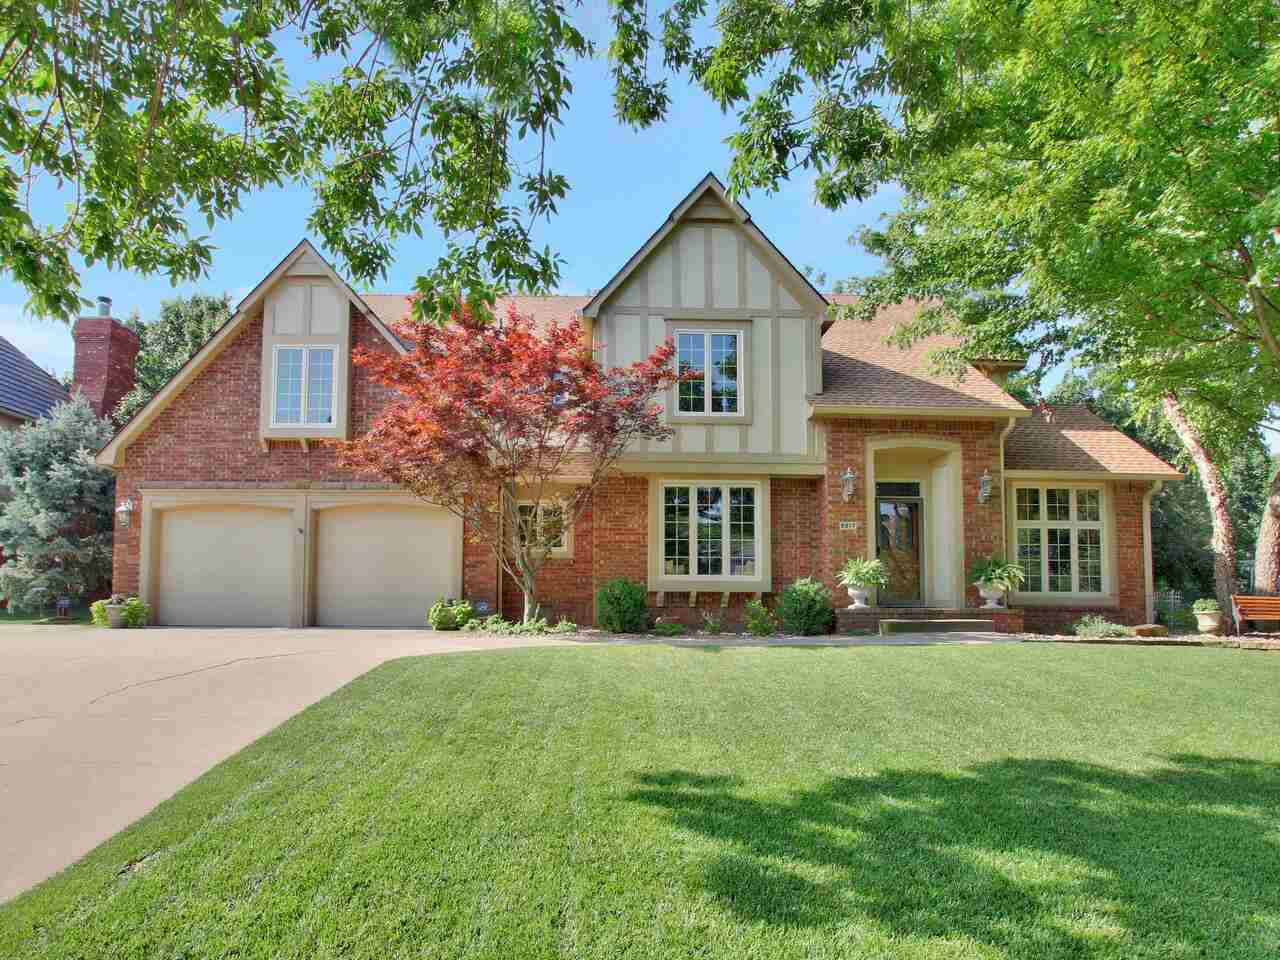 This spacious, well cared for 5 bedroom, 4.5 bath home has nearly 4,000 SF finished and is located o